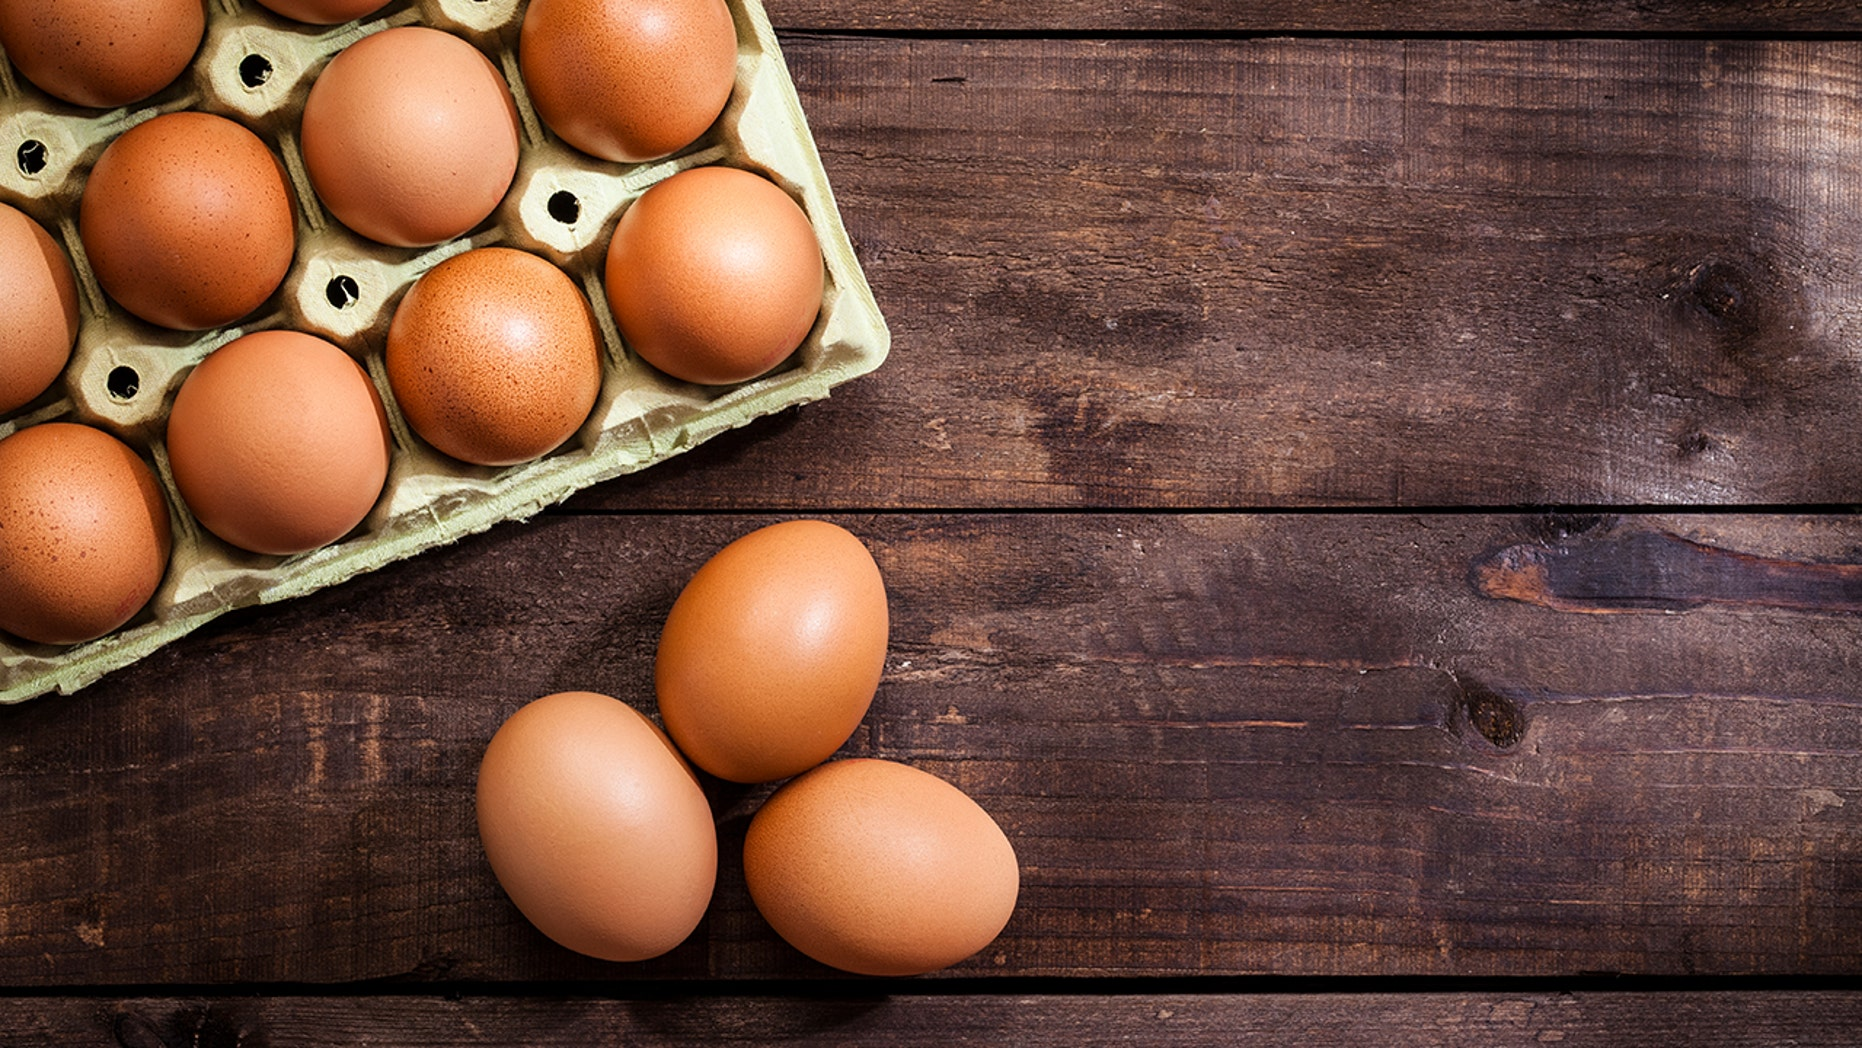 Eating eggs on a regular basis can lower your risk of stroke and heart attack, according to a new study.